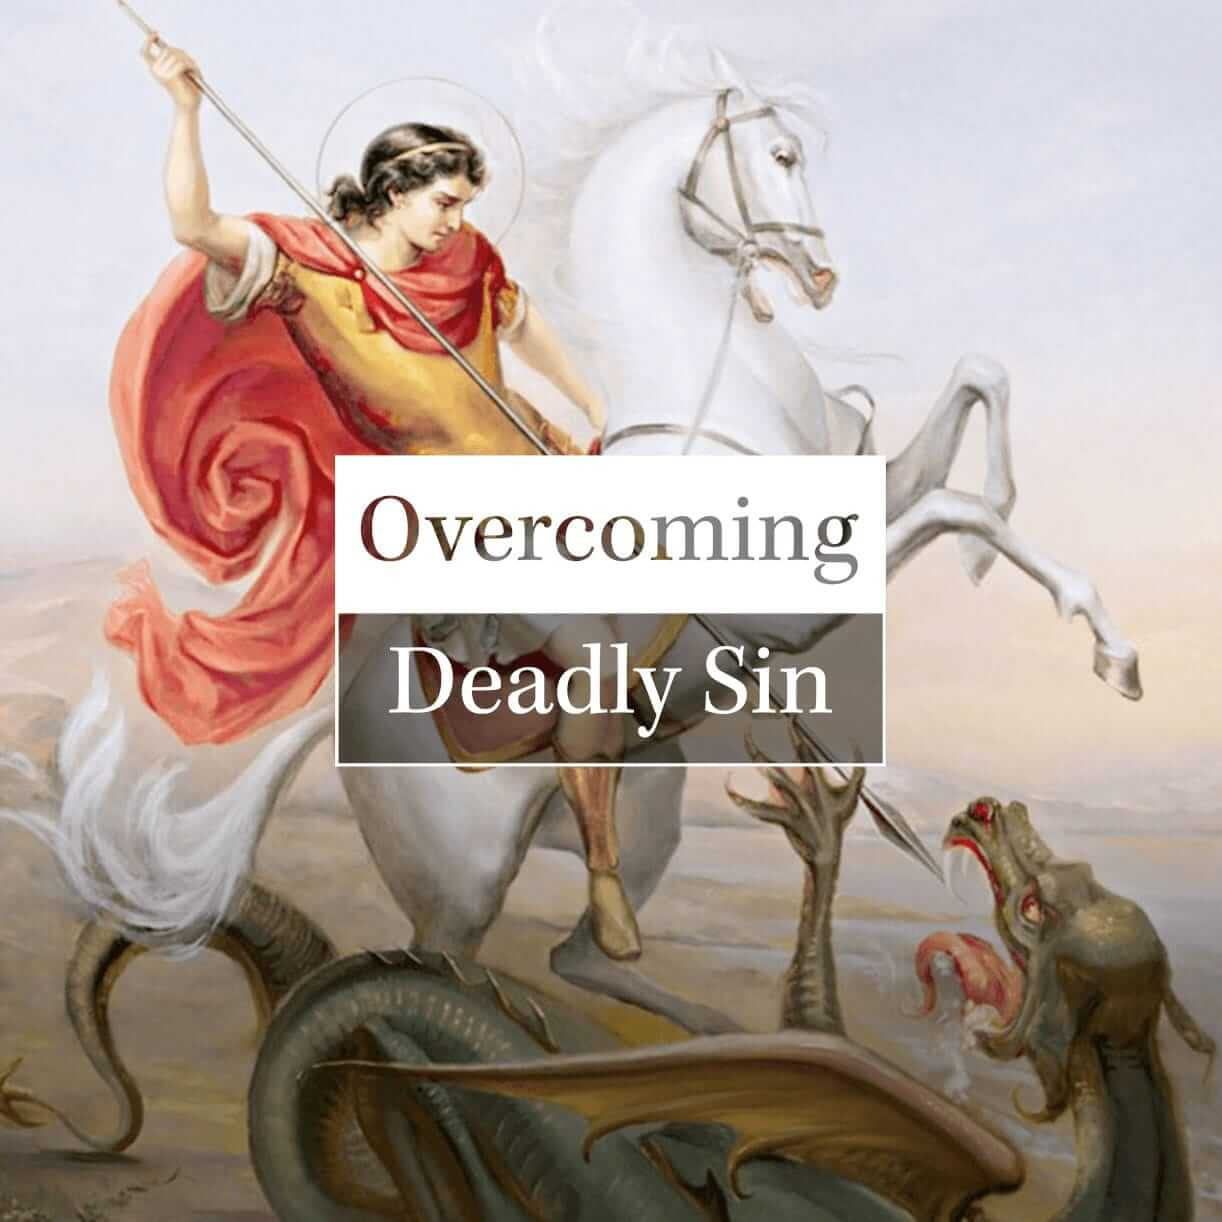 Overcoming Deadly Sin